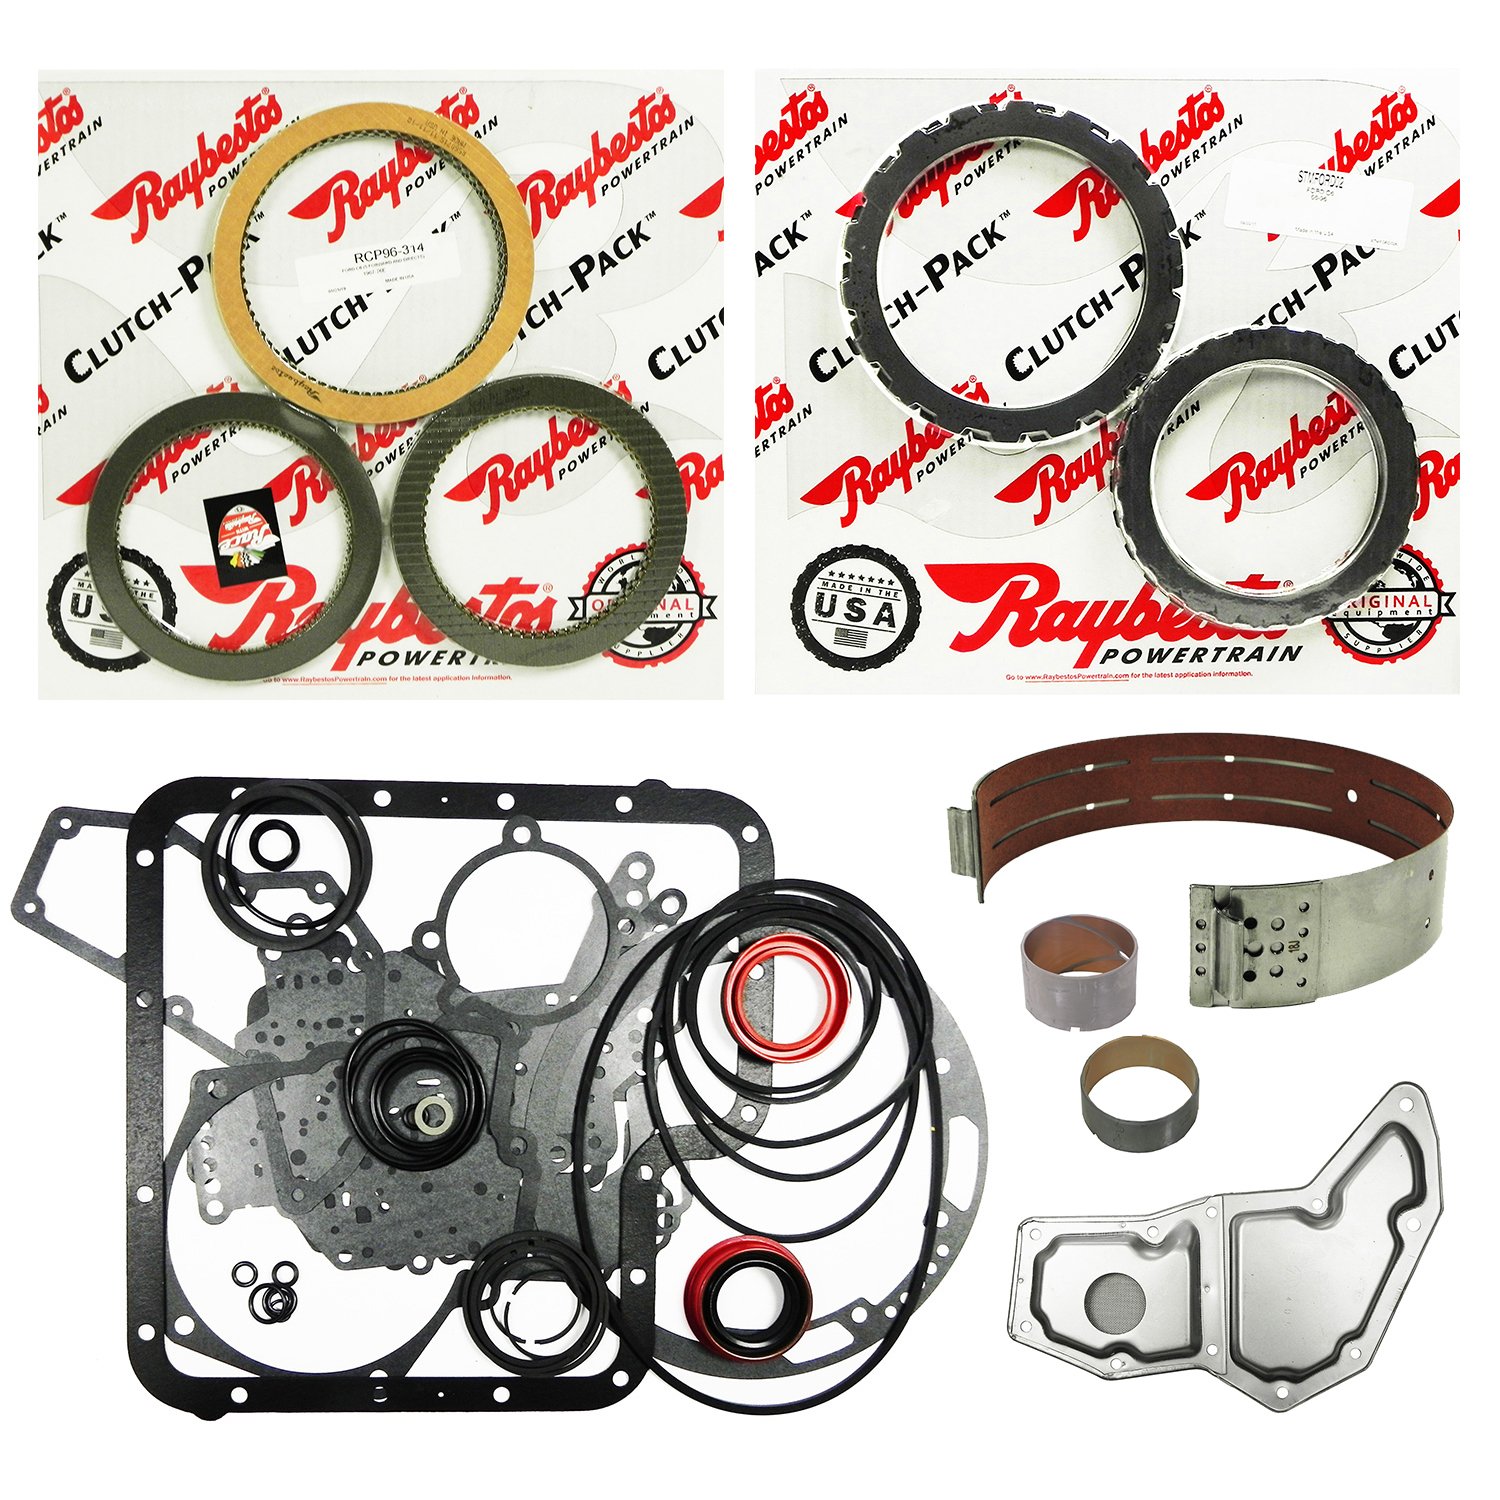 C6 Super Rebuild Kit